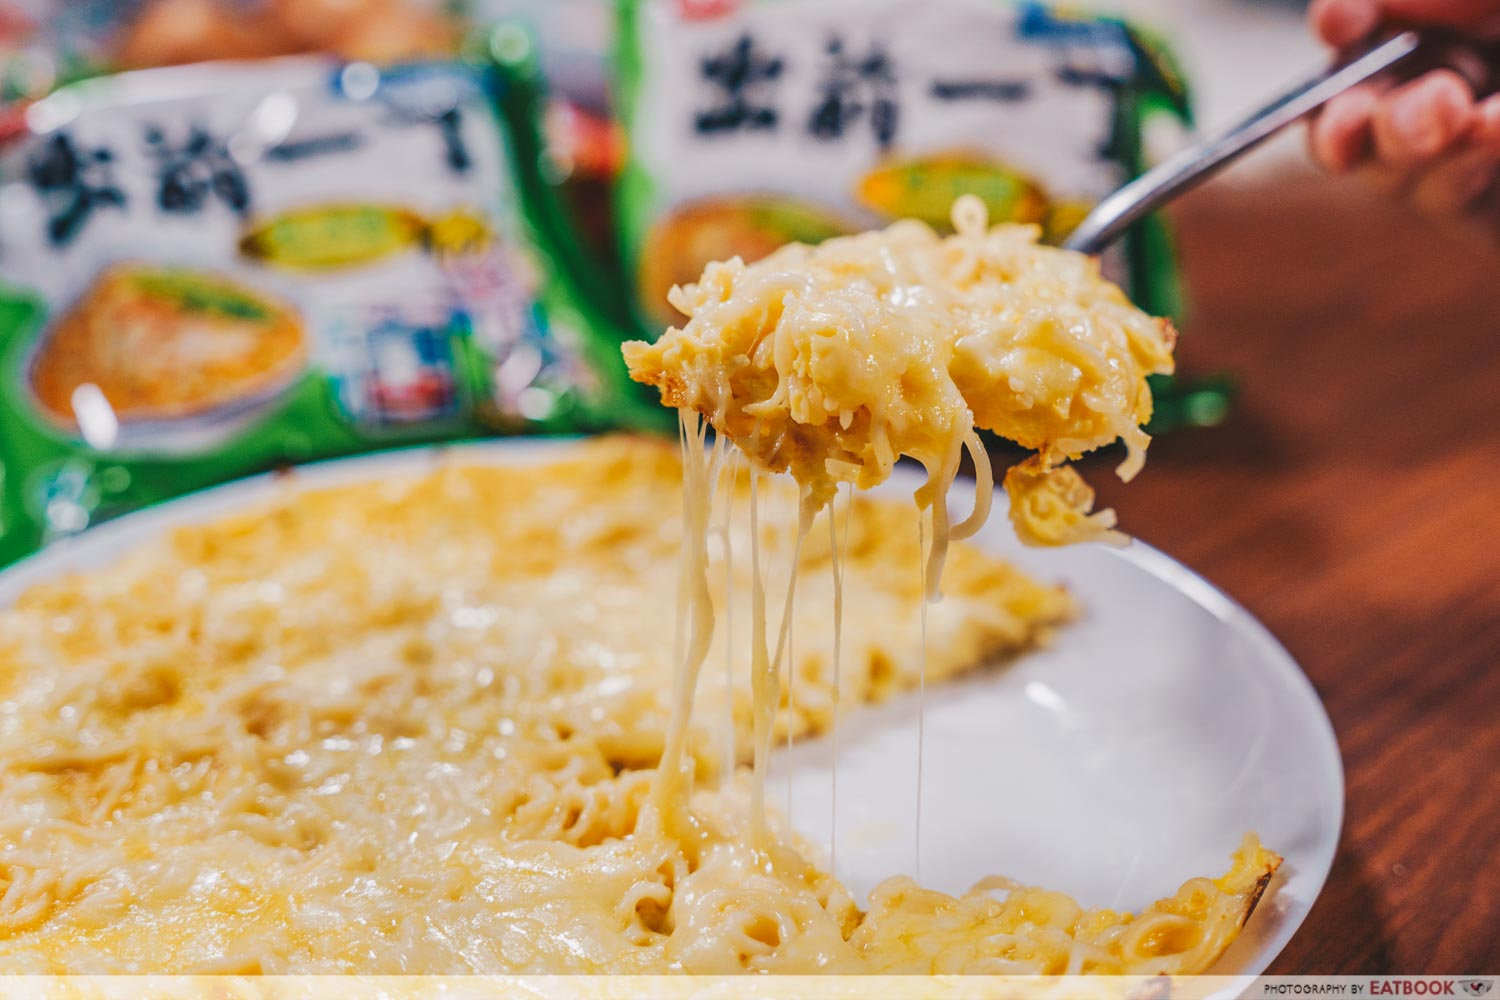 instant noodles - Cheese Omelette Noodles